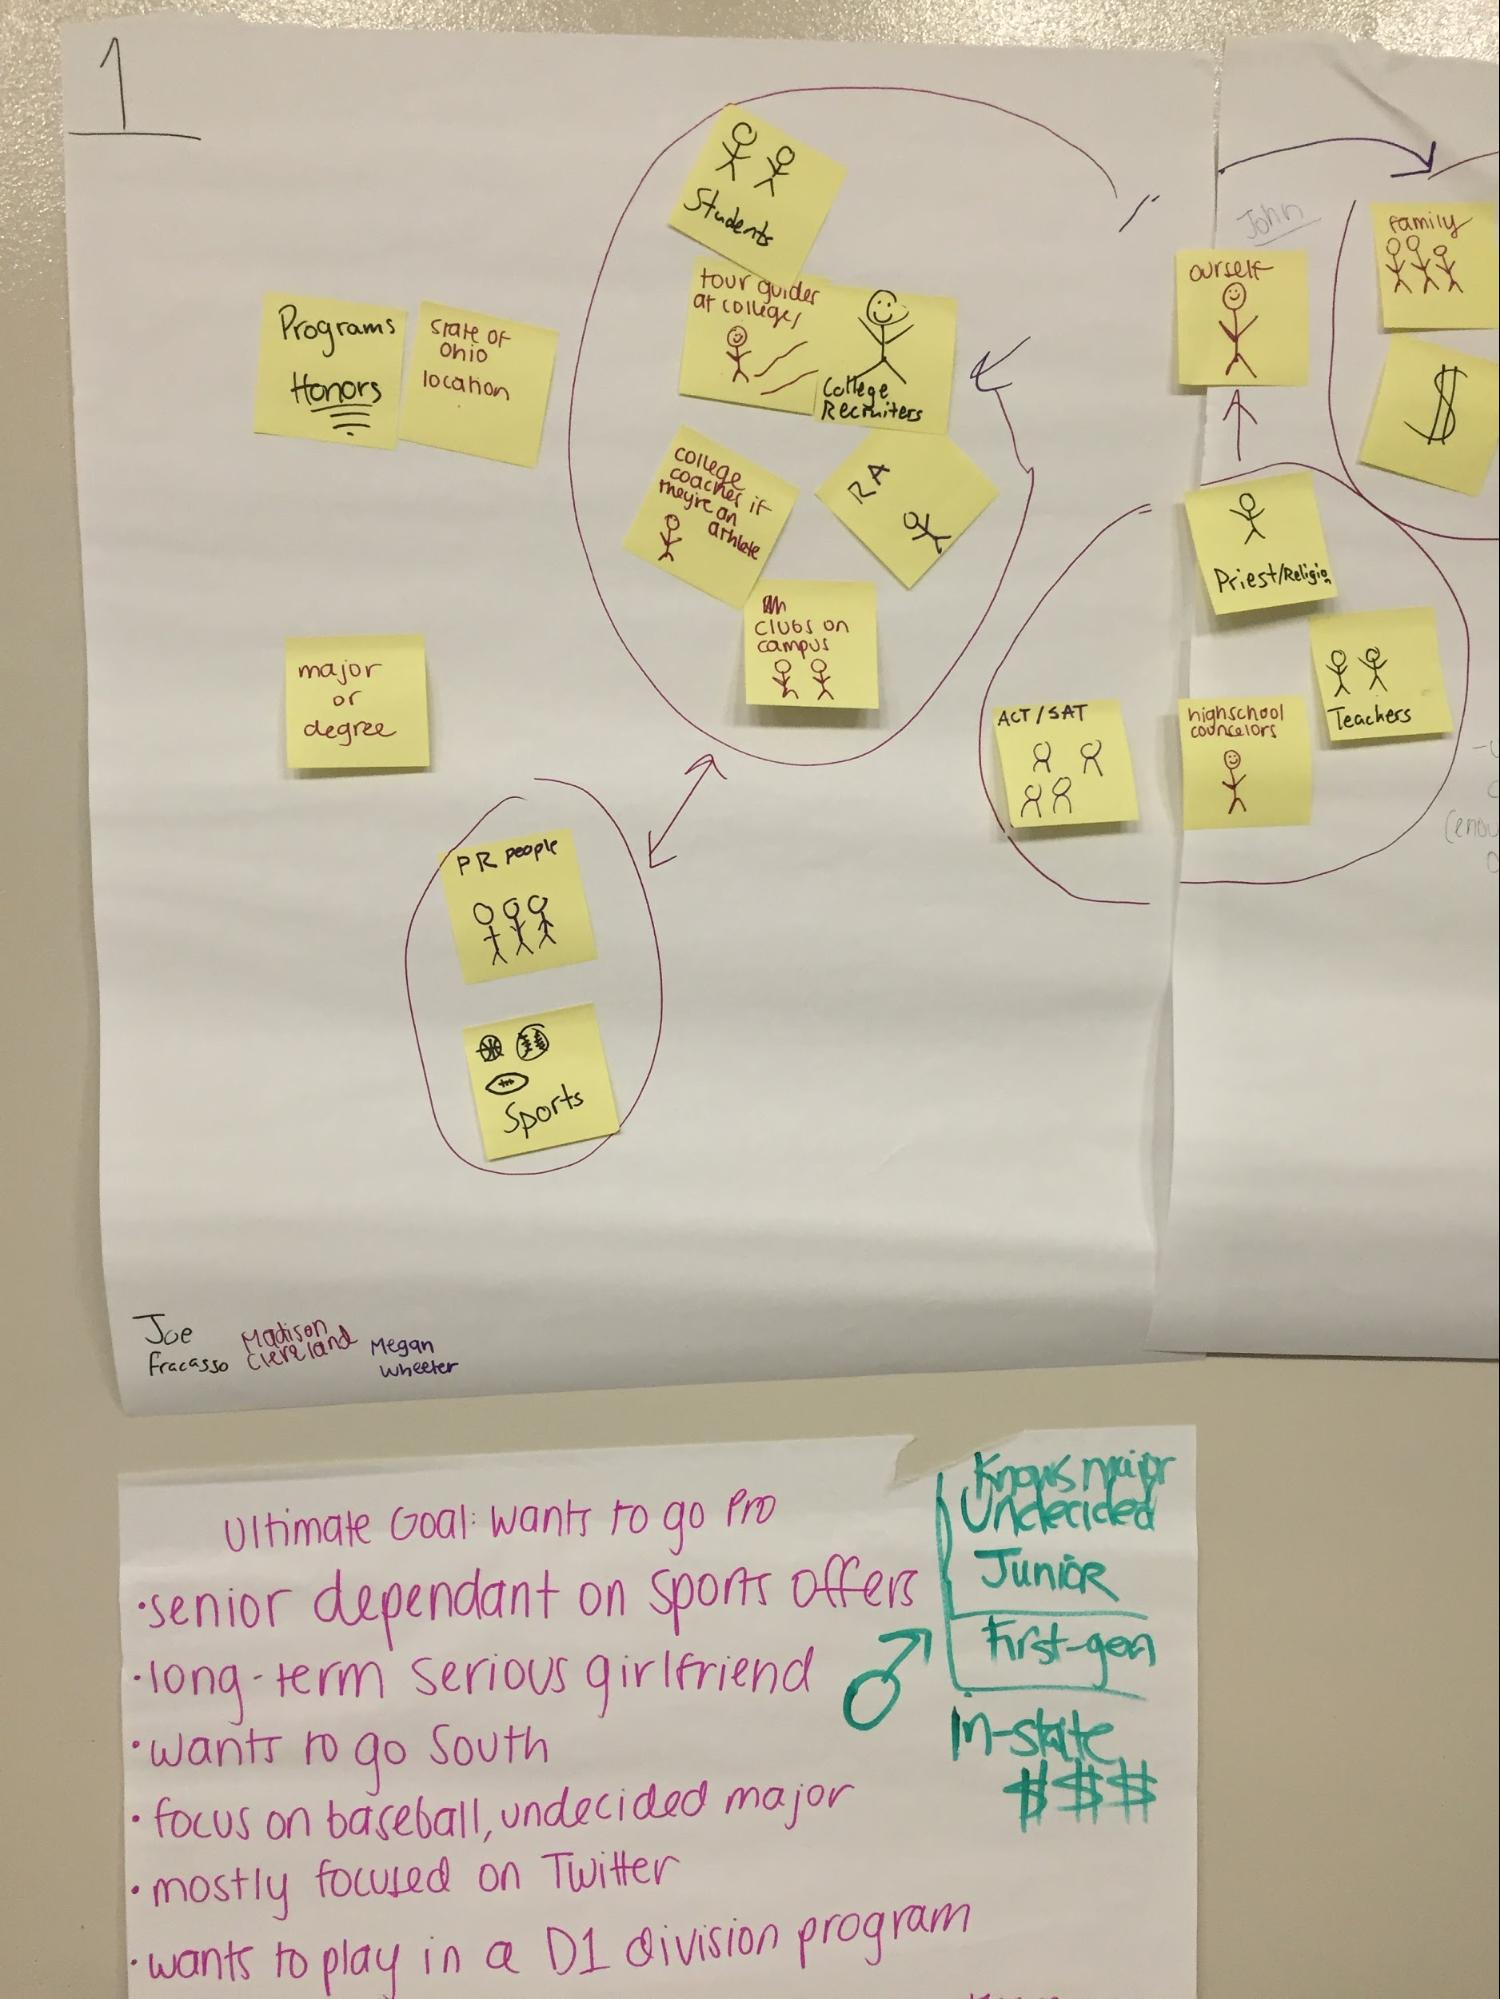 A partial image of a stakeholder map representing the problem space of college admissions and enrollment. Sticky notes on a board contain ideas of what types of people and groups could be stakeholders for a potential entrepreneurial venture. Copyright Michelle Ferrier.